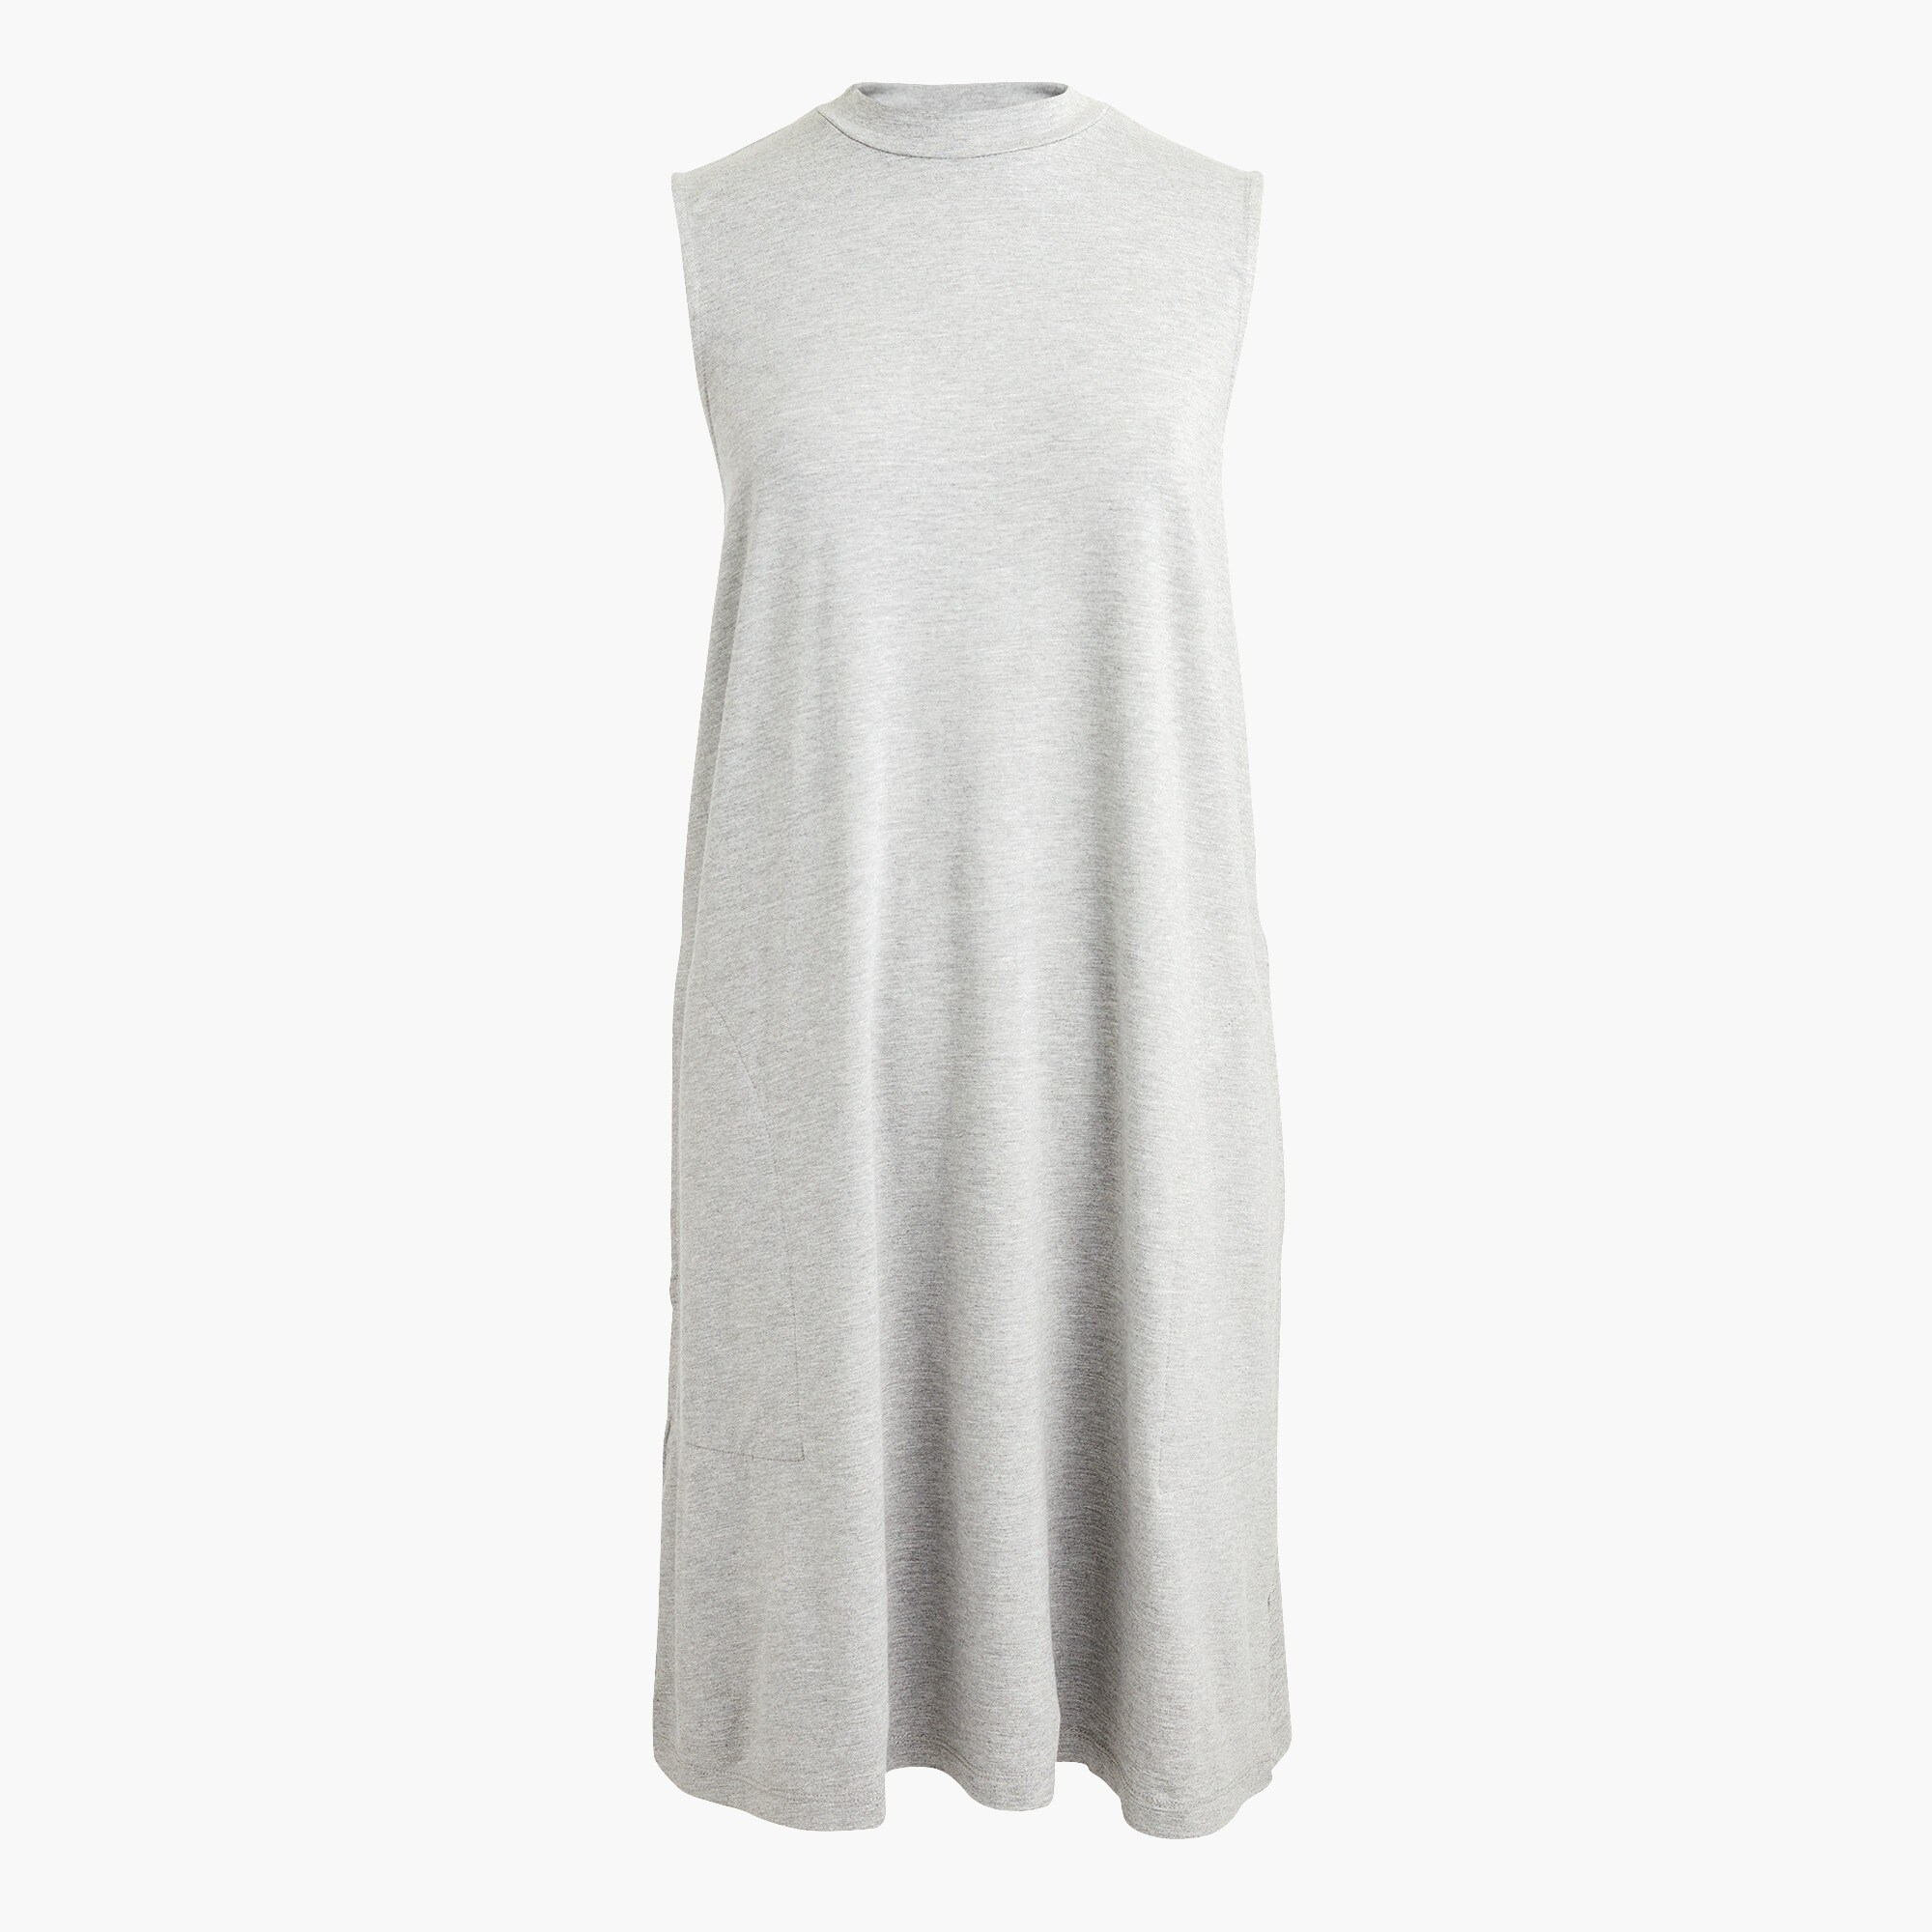 Image 4 for Swingy sleeveless dress